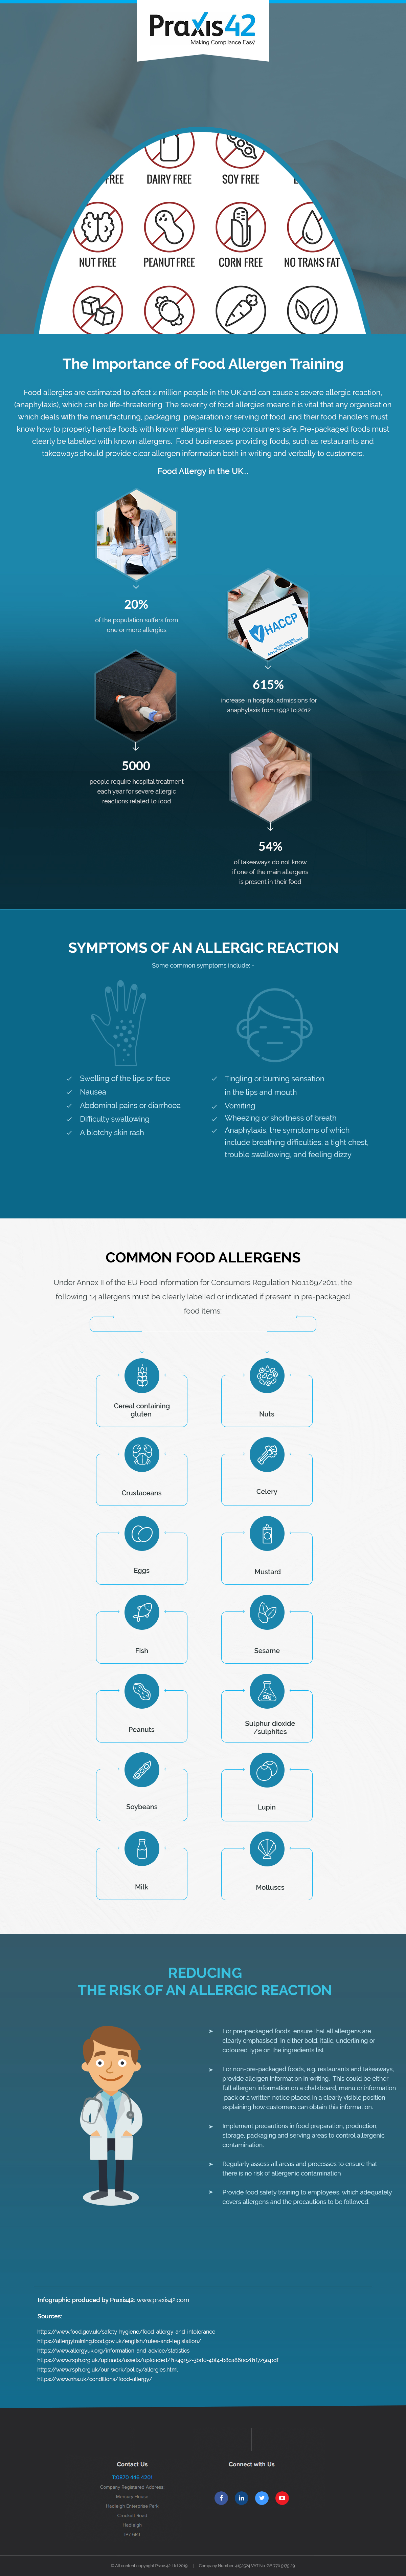 Infographic for food allergens